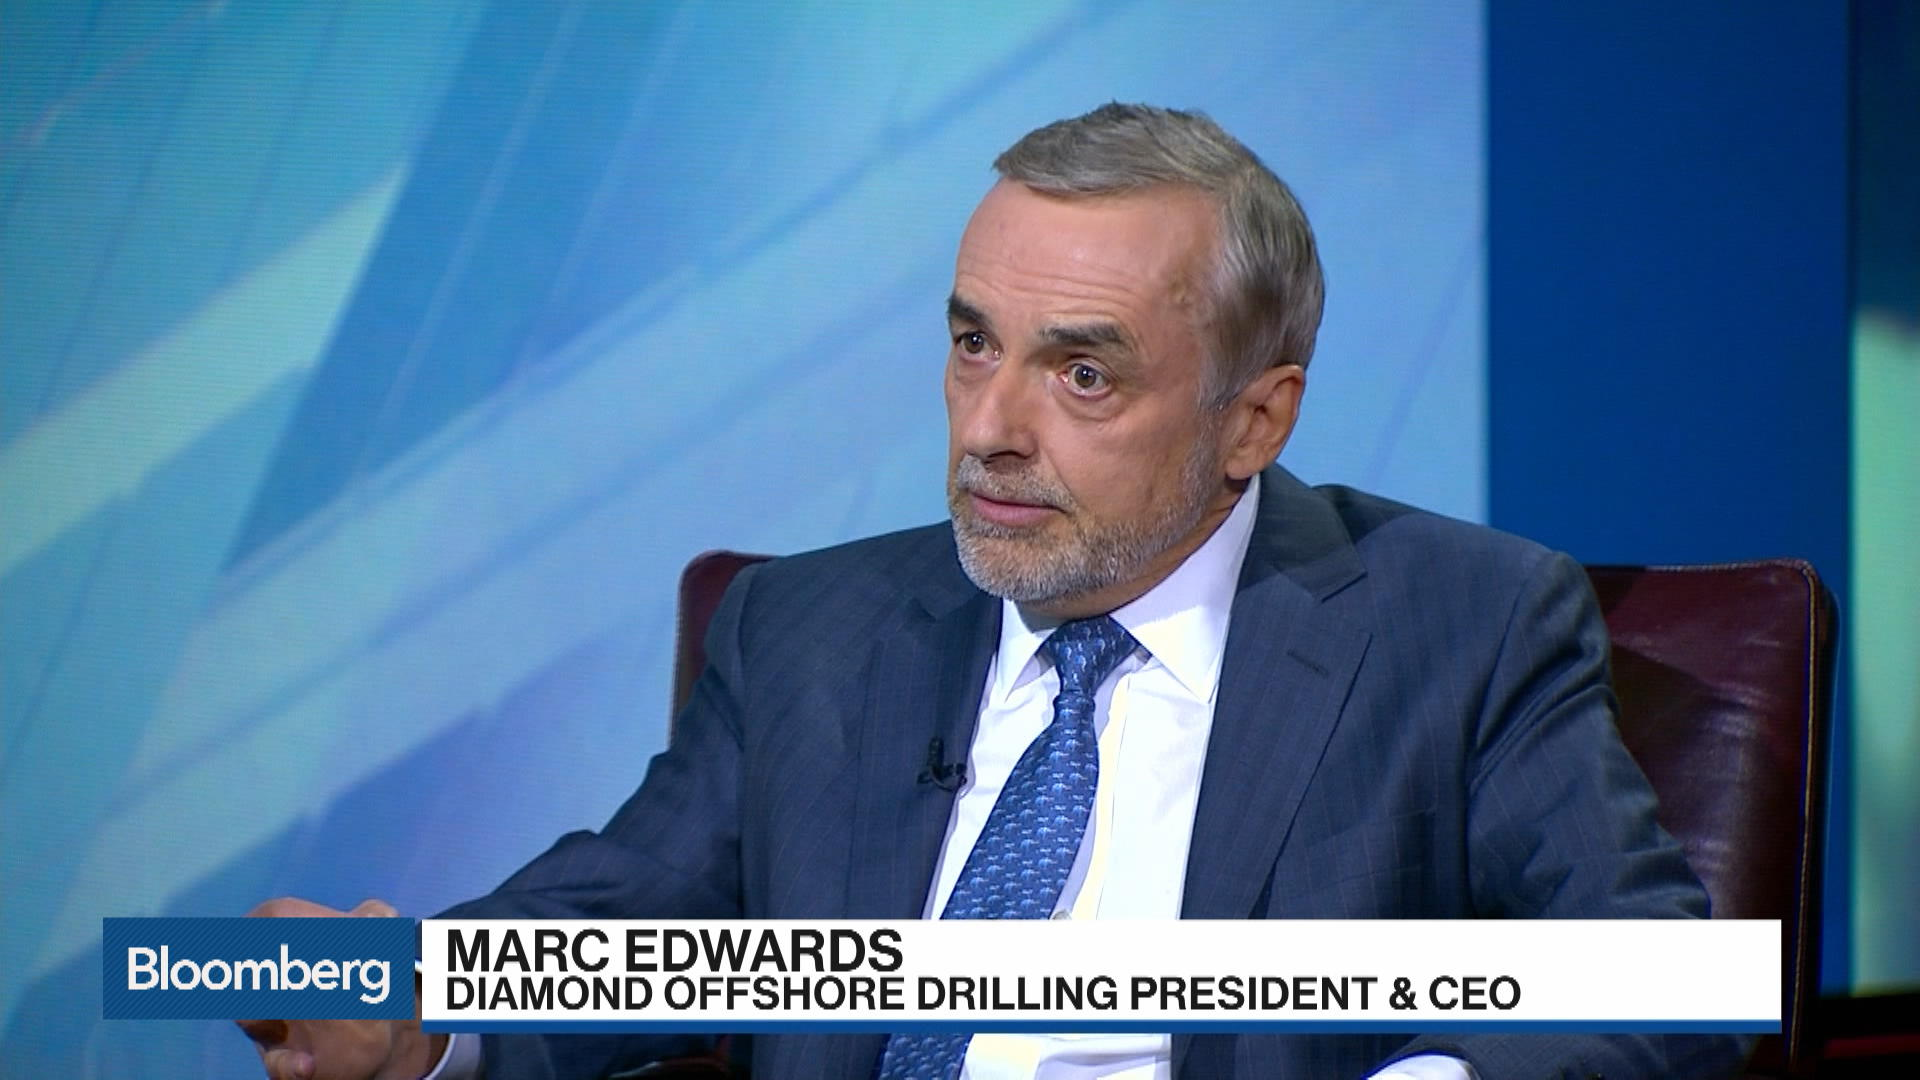 Deepwater Profitable at Today's Prices, Says Diamond Offshore CEO